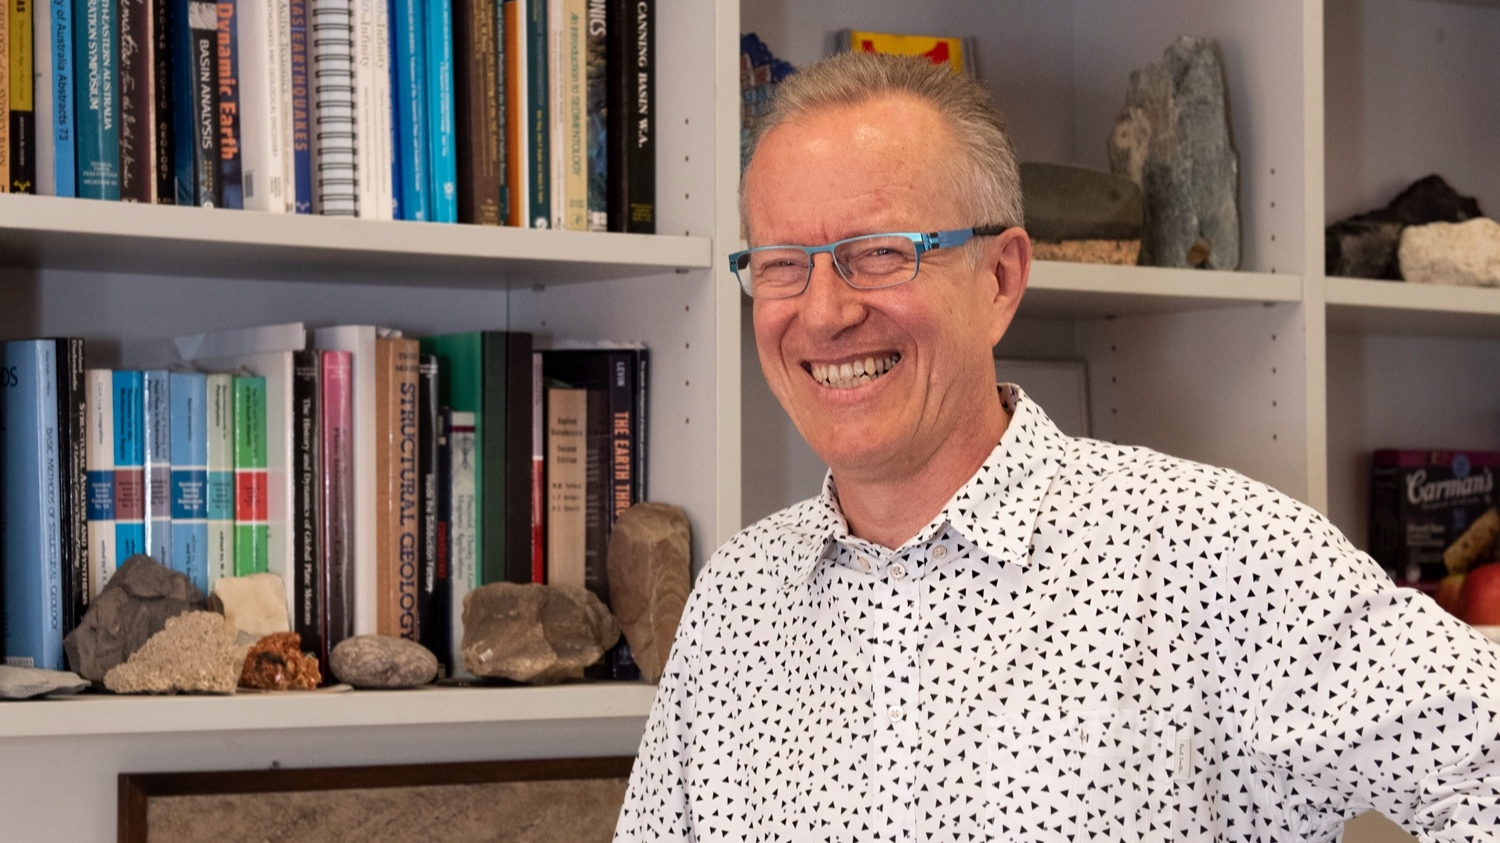 Dietmar in his Sydney University office in late 2018. Image ©AuScope.